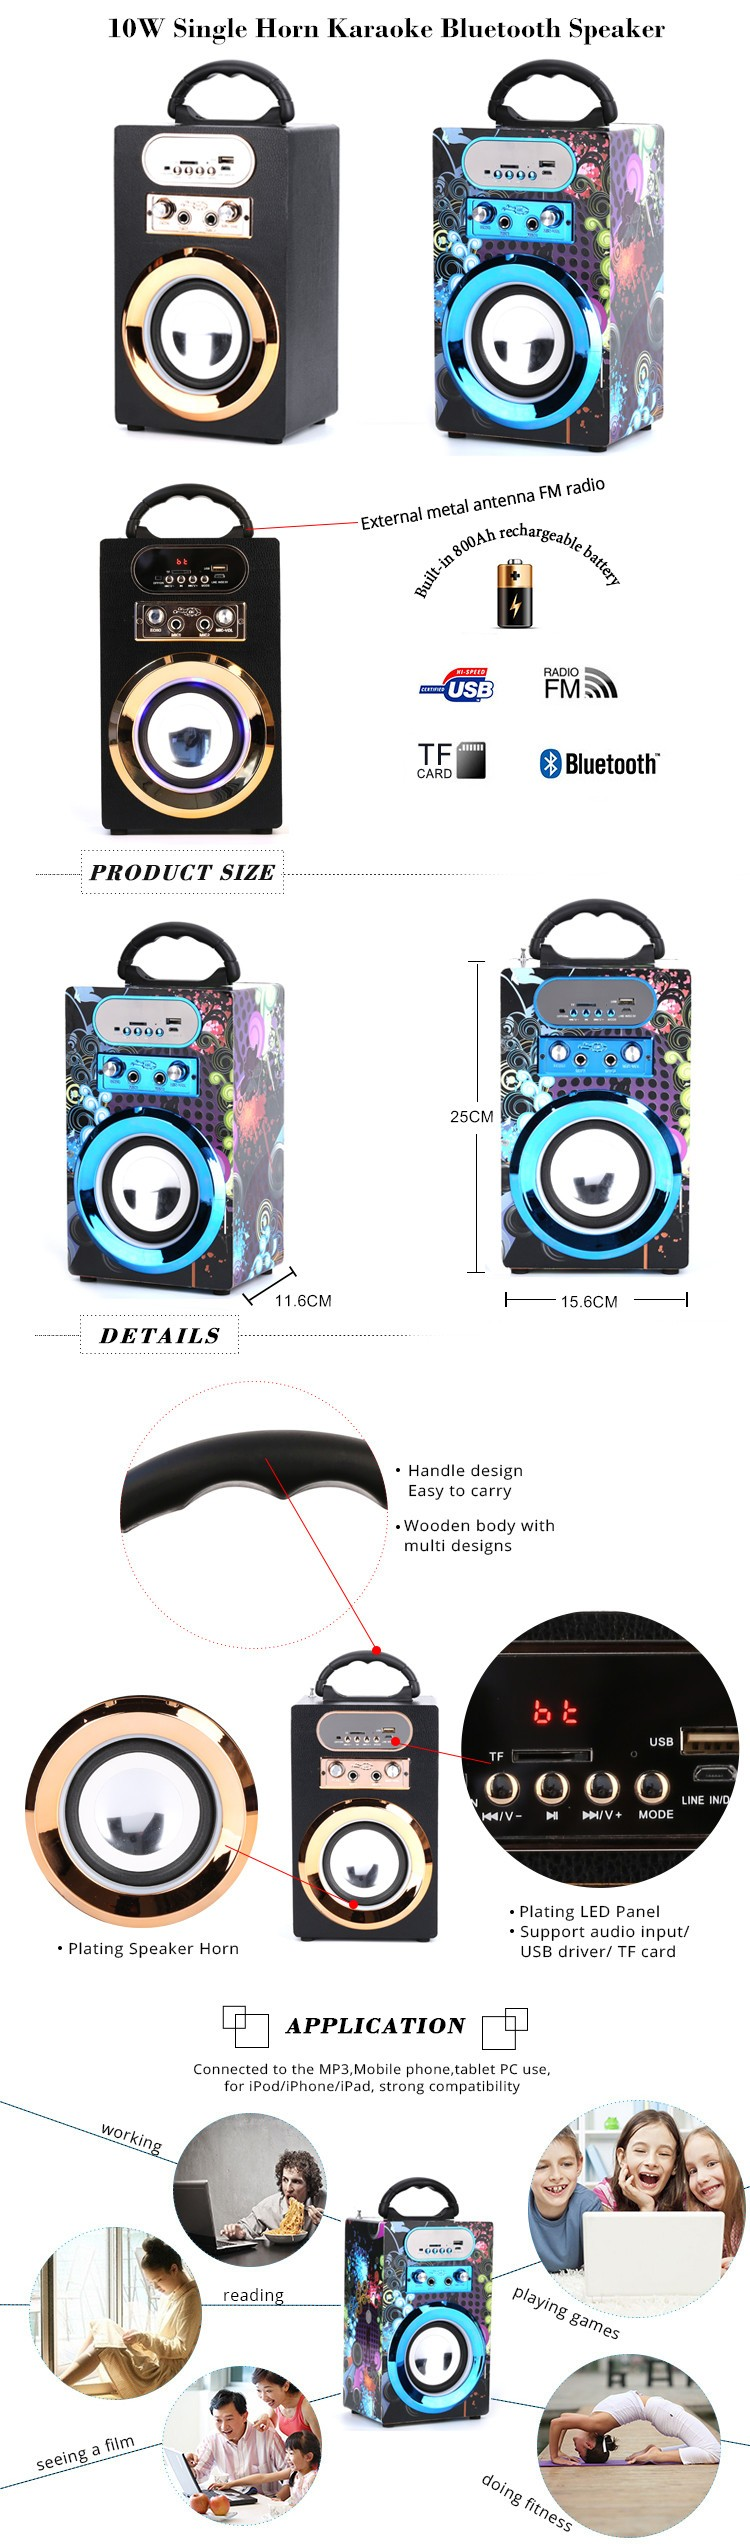 New arrival portable bluetooth karaoke speaker with USB/SD/AUX-IN/FM Radio